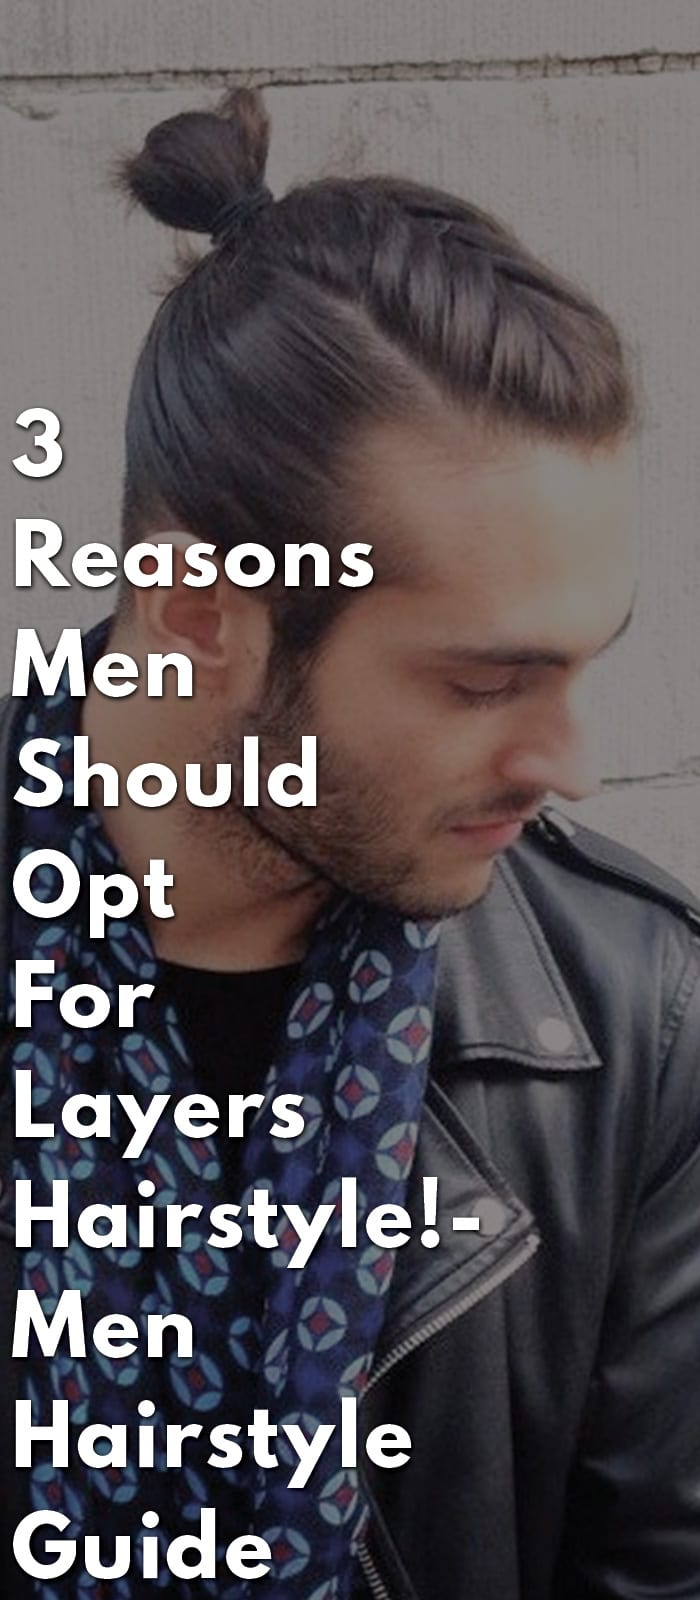 3-Reasons-Men-Should-Opt-For-Layers-Hairstyle!-Men-Hairstyle-Guide